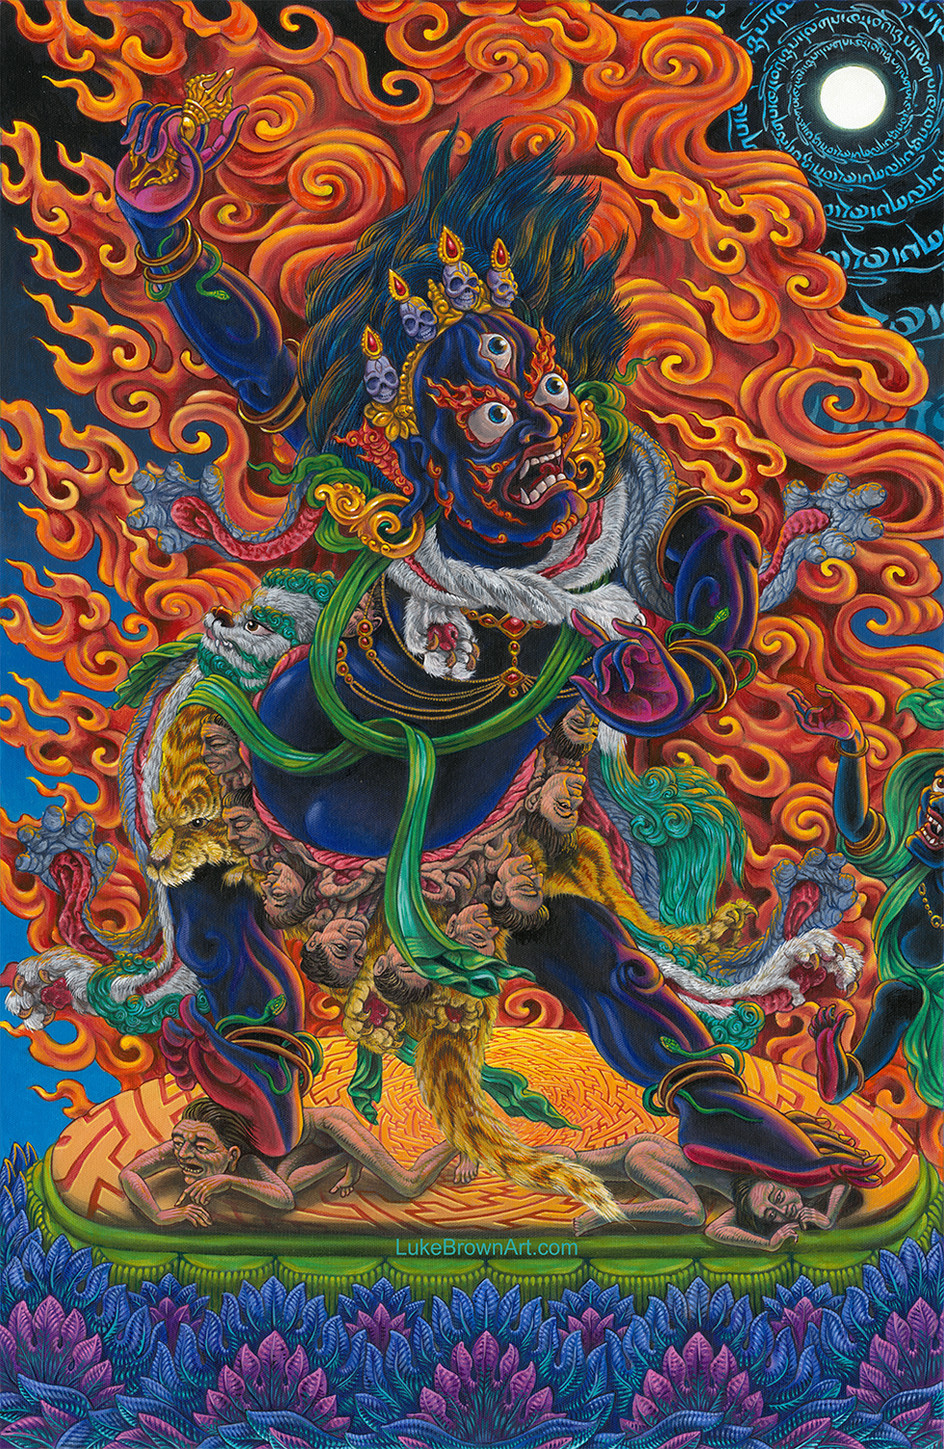 SENGE DRADOG (The Wrathful Form of Padmasambhava)